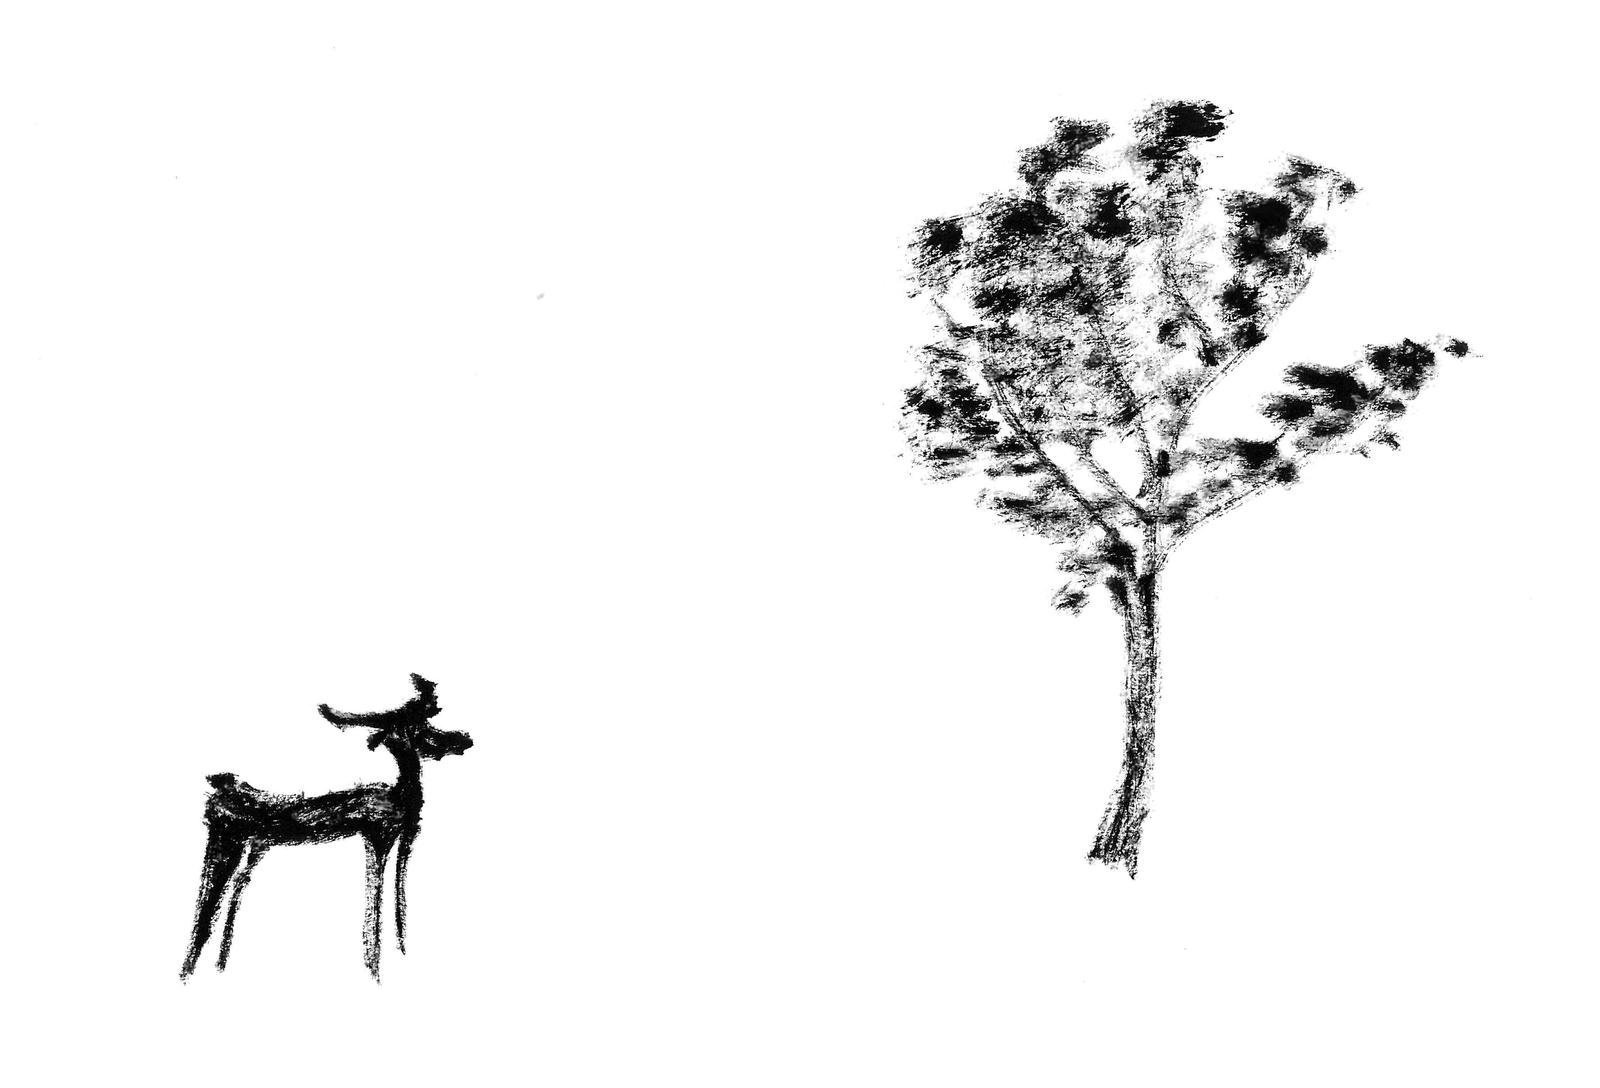 The deer and the tree